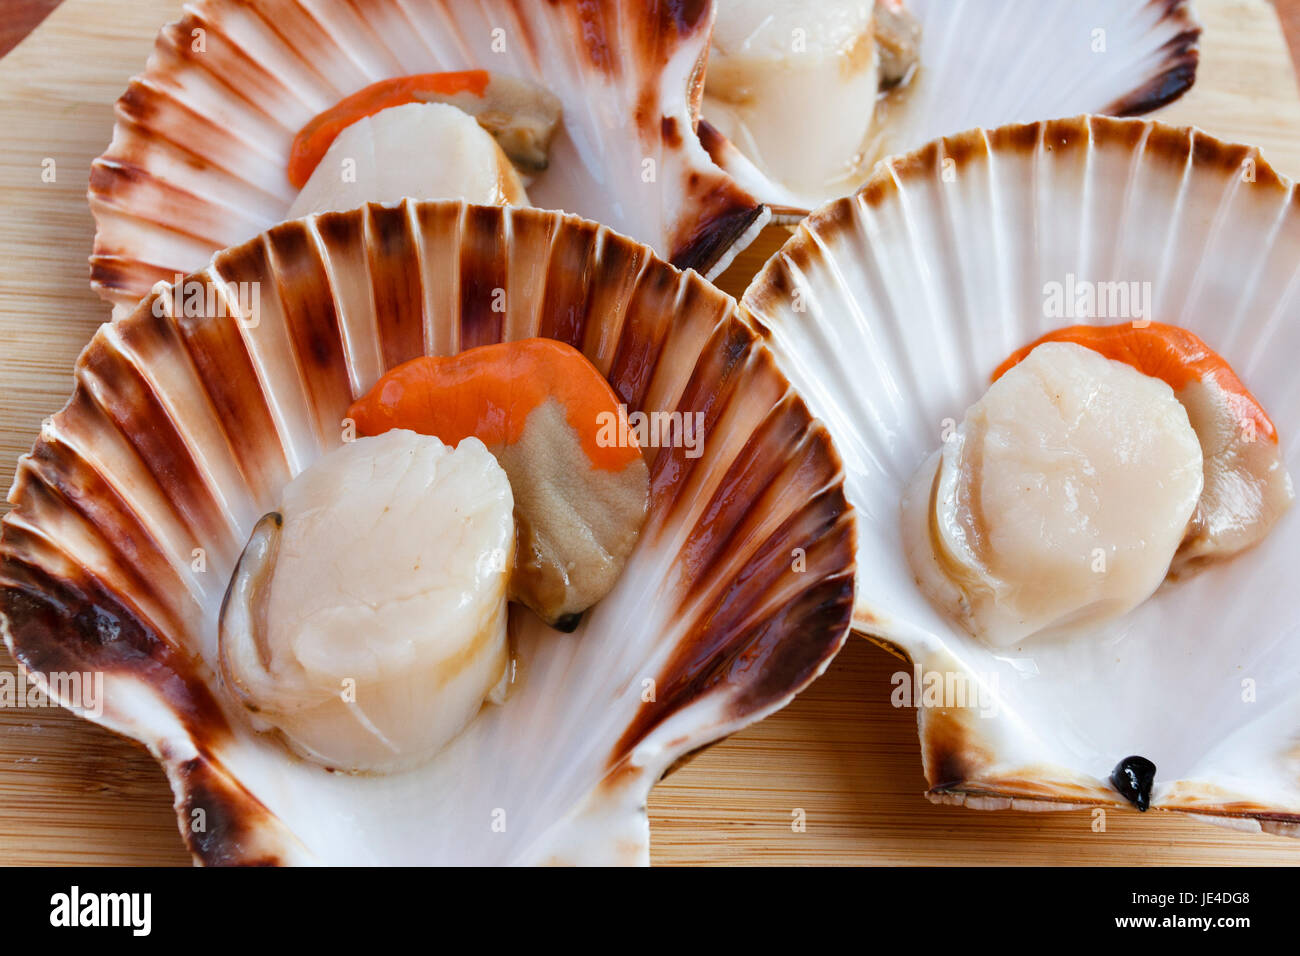 Raw scallops in half shell - Stock Image